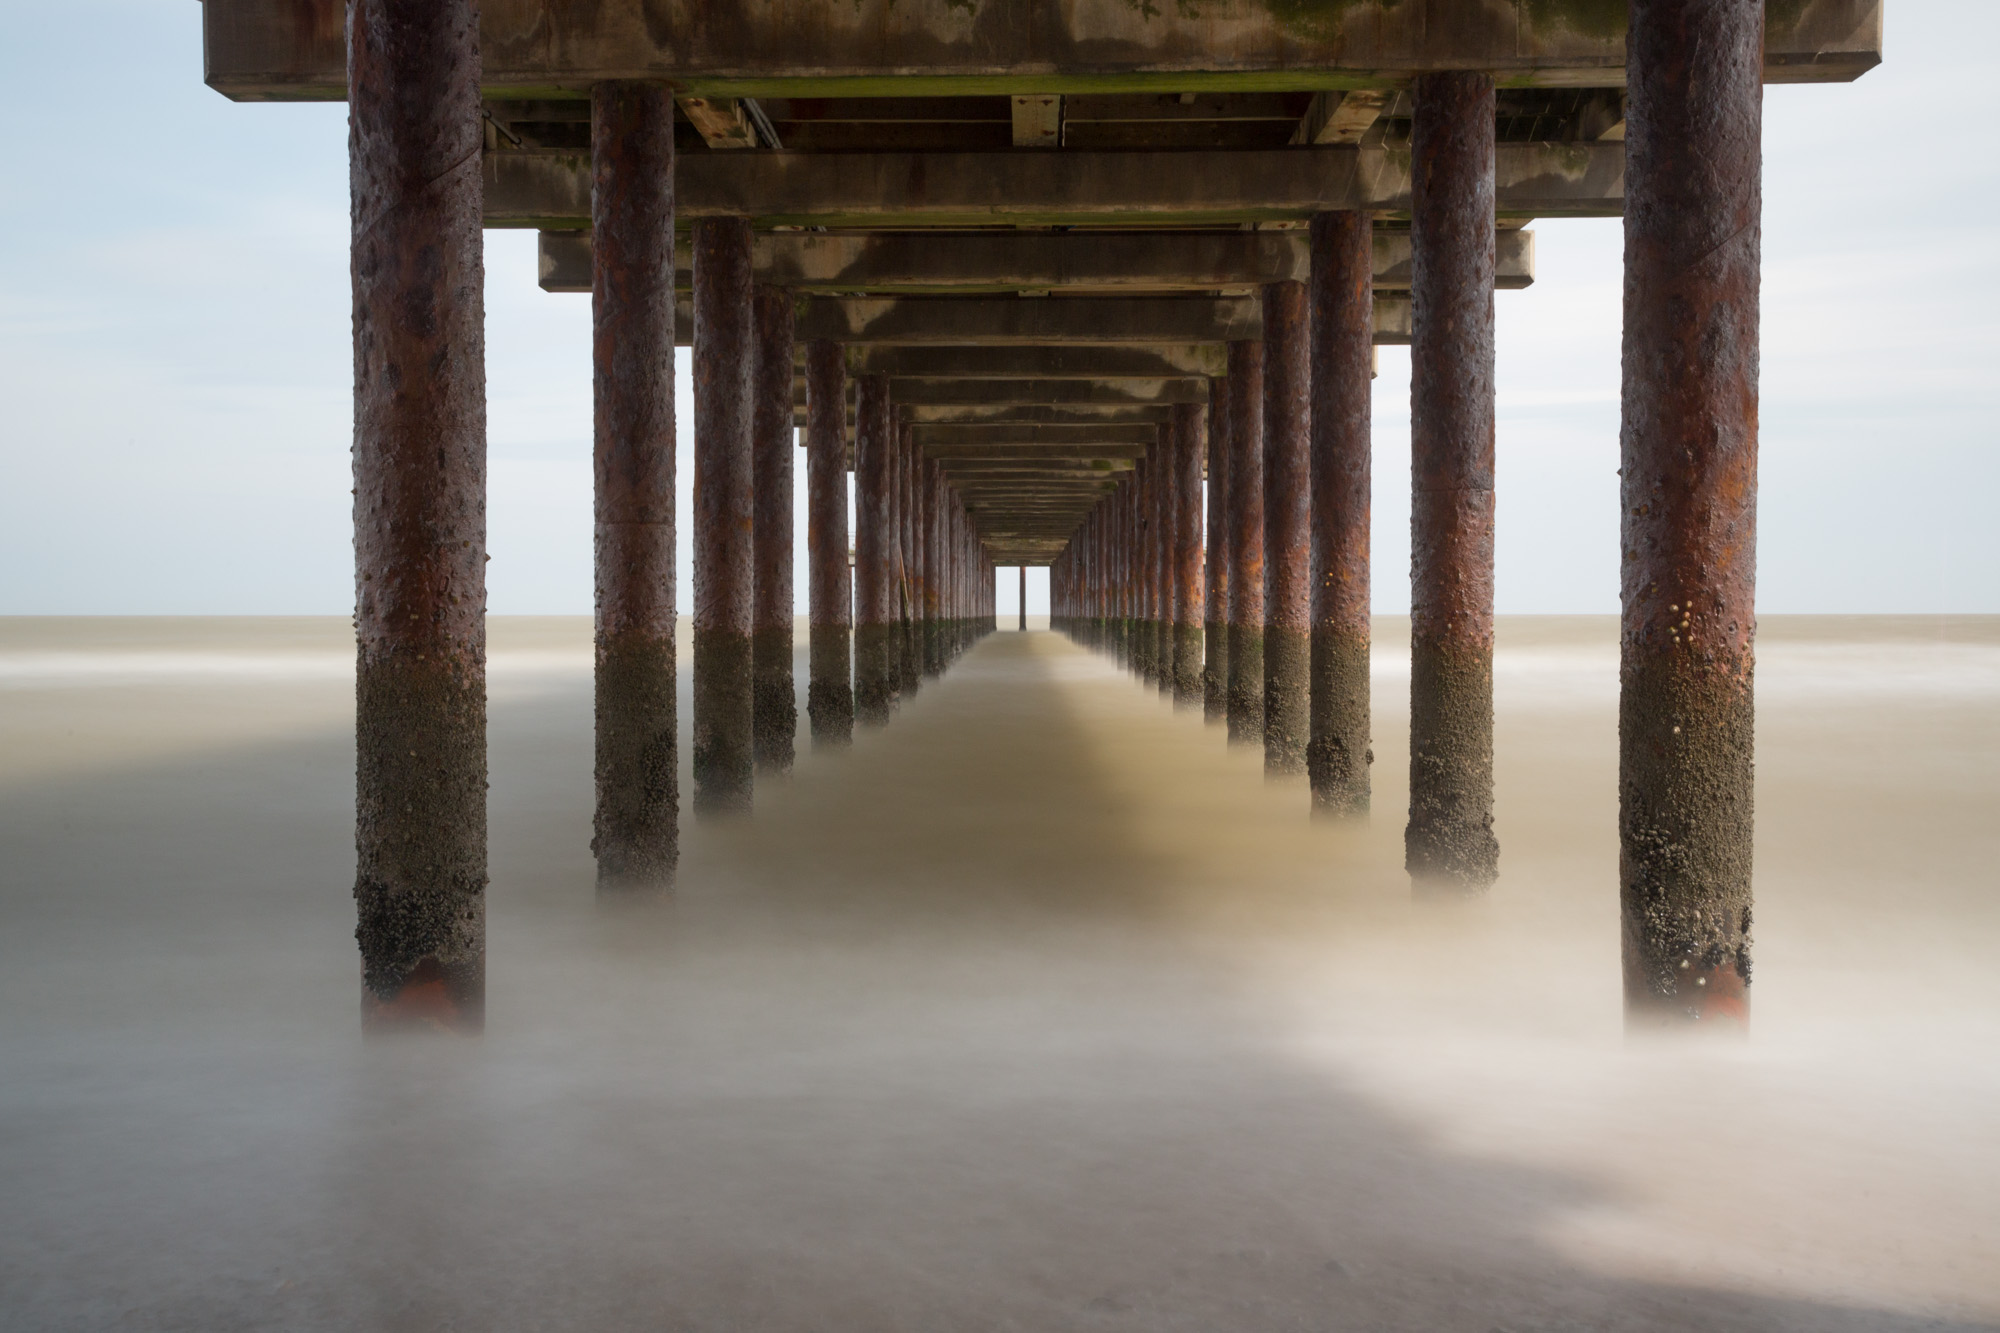 antonyz long exposure architecture photograph under wooden victorian southwold pier in the UK